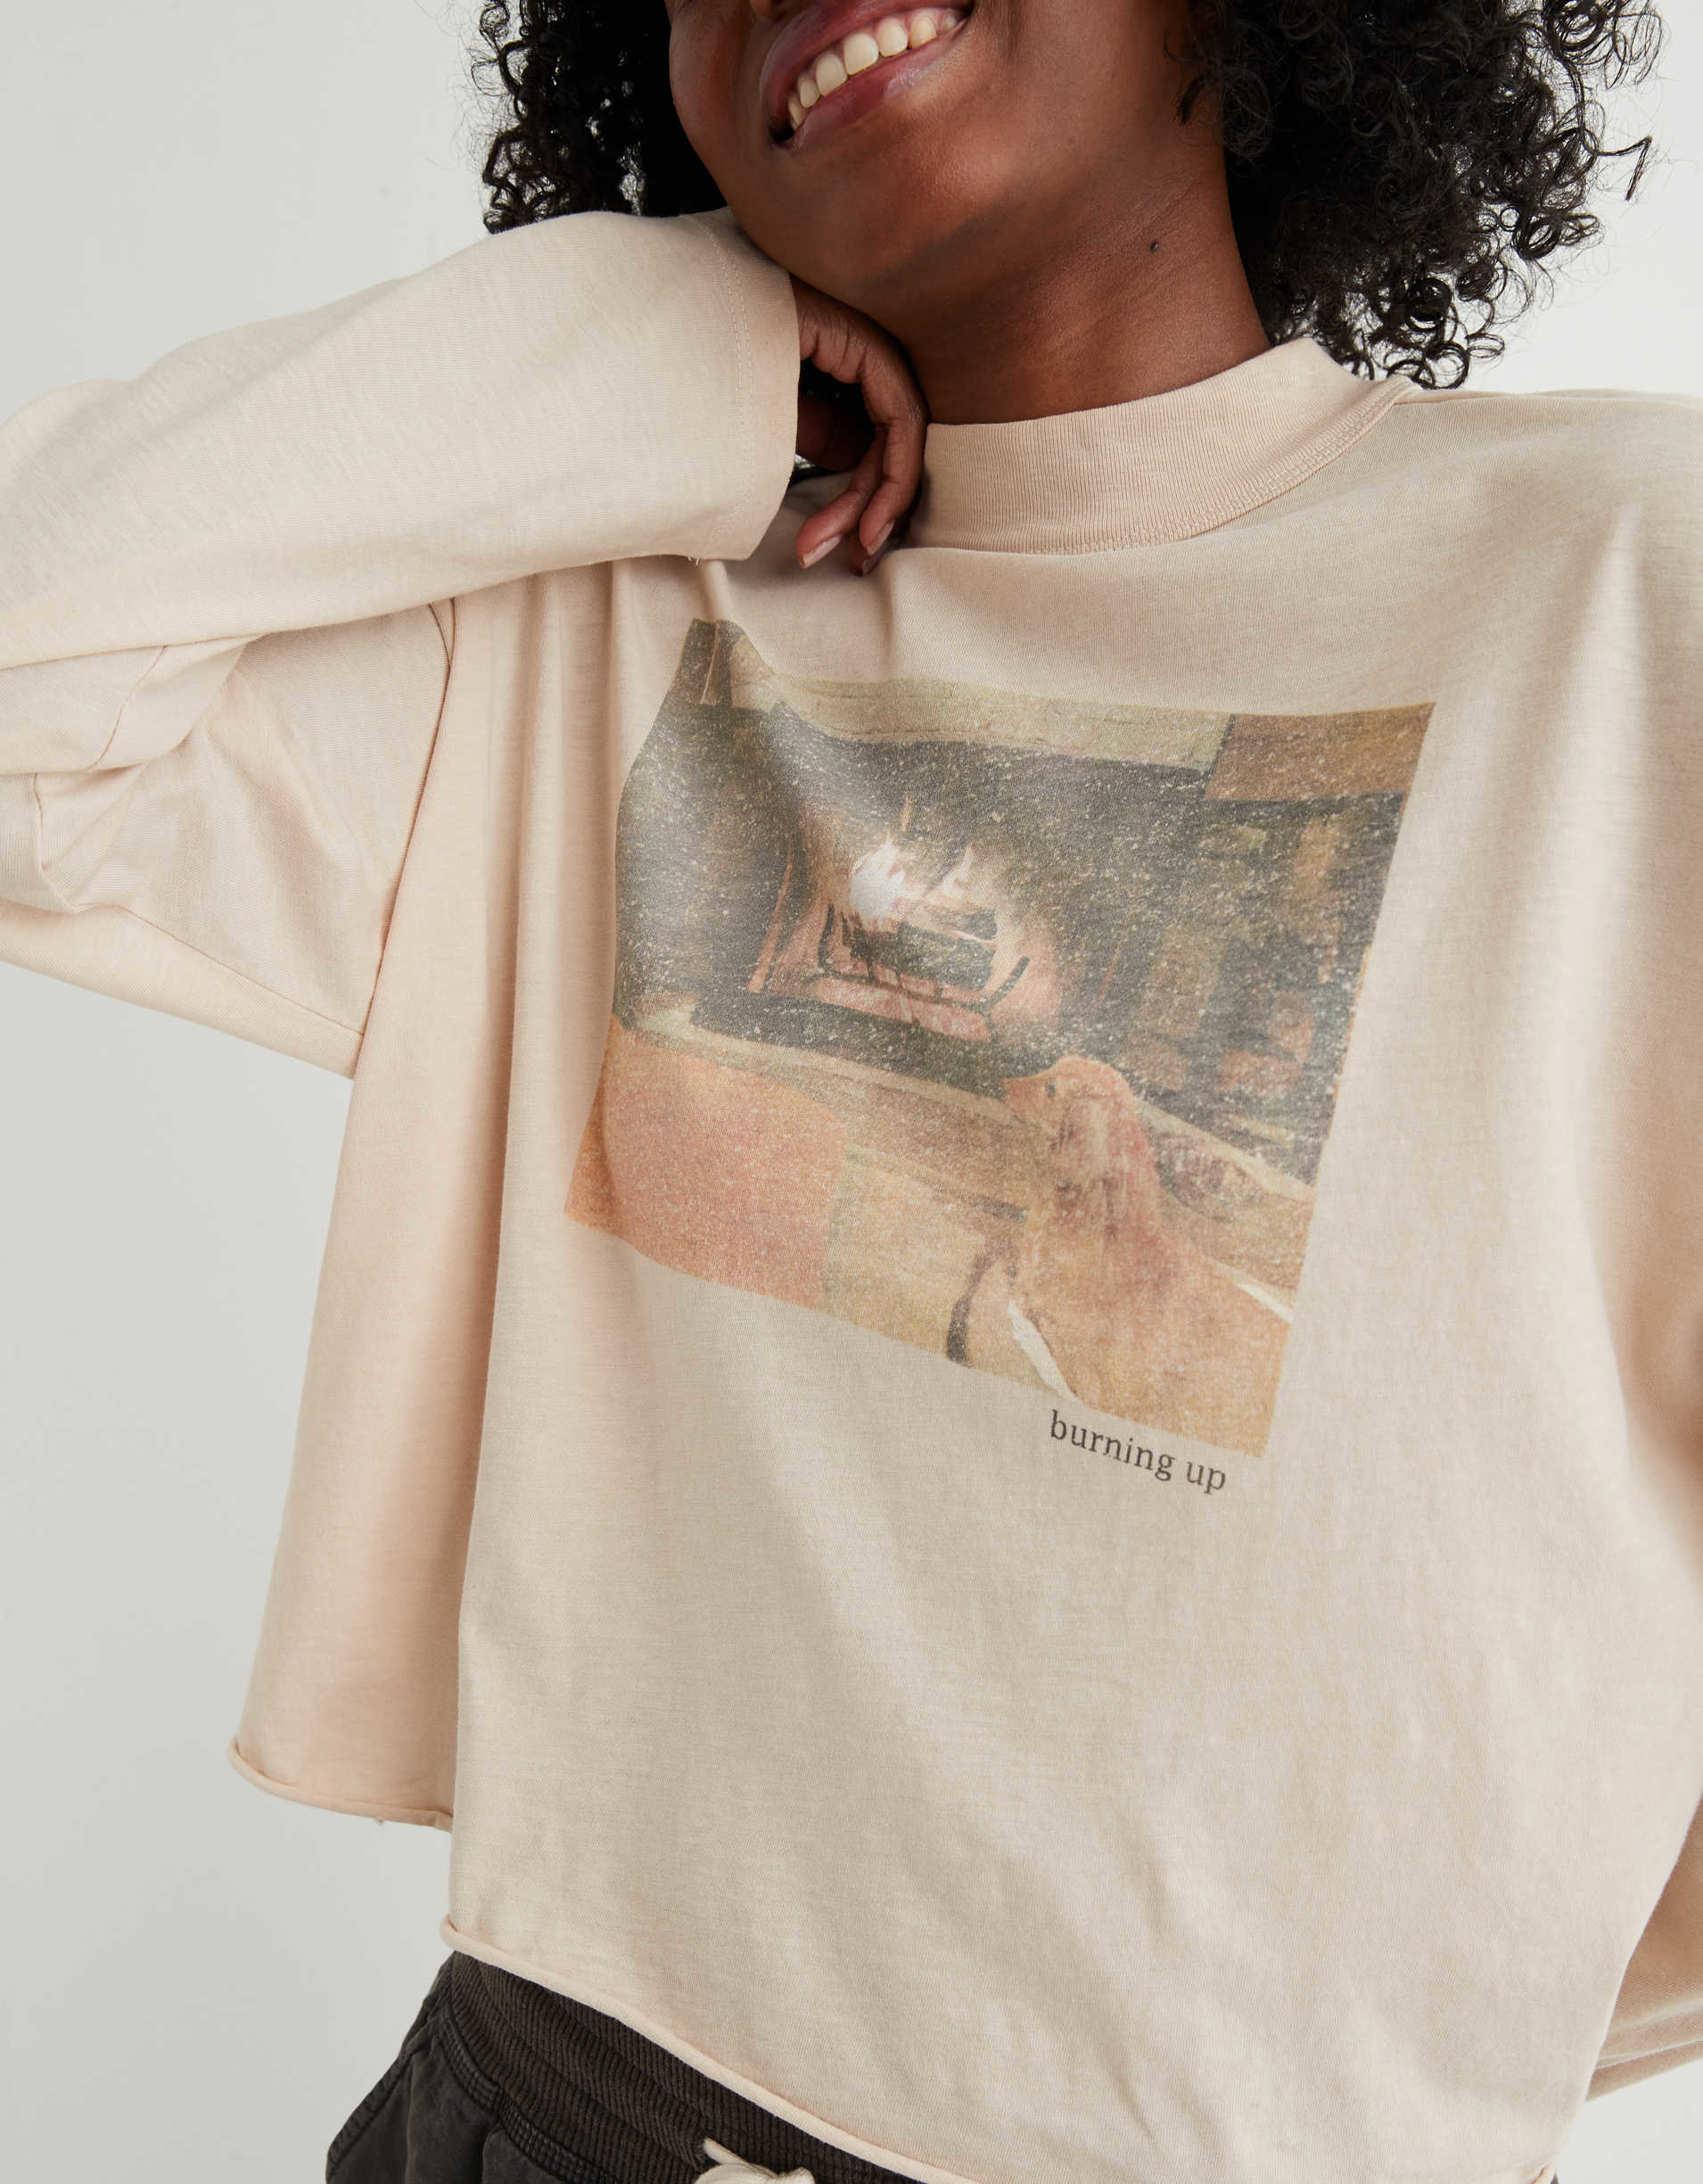 Model wearing the t-shirt in beige with a faded picture of a fireplace and a dog on it